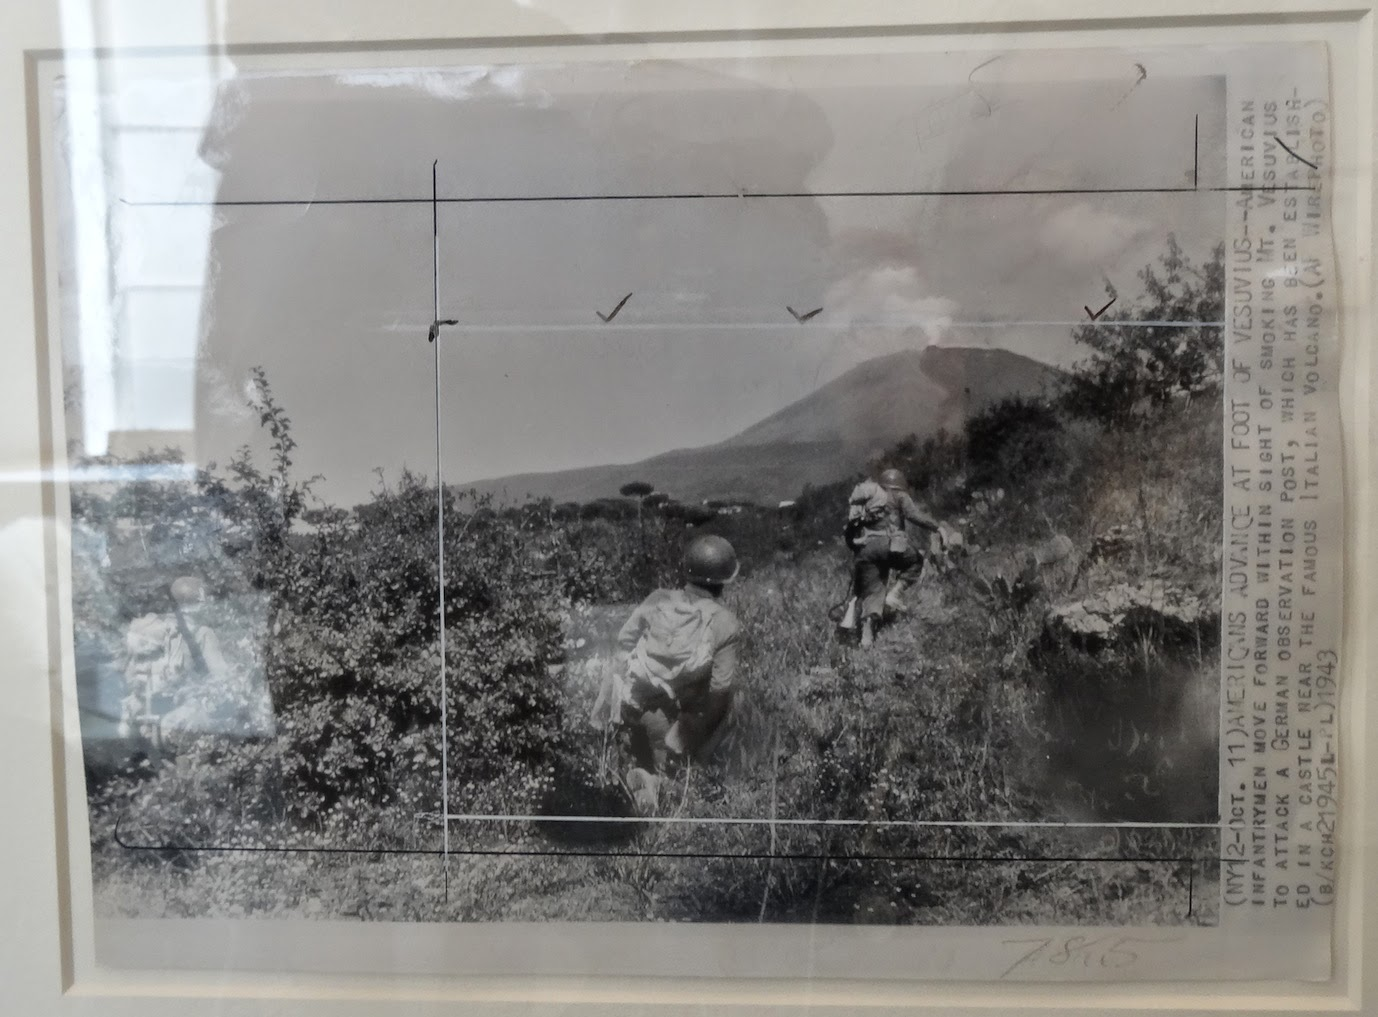 Robert Capa - US soldiers in the bush, mt Vesuvius in the background